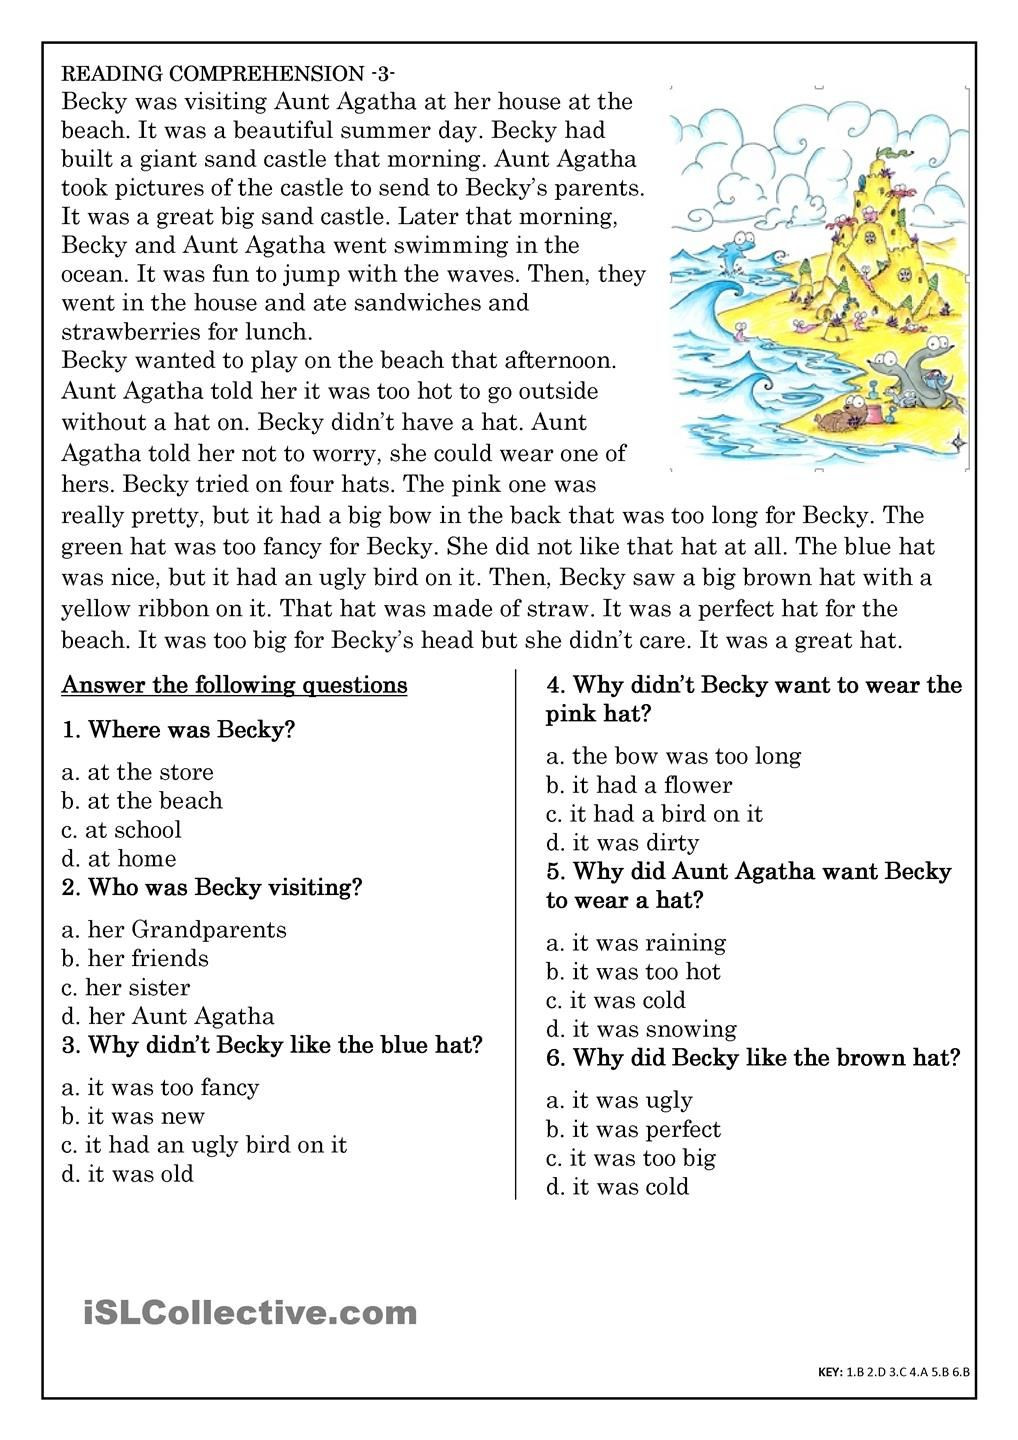 Reading Comprehension Worksheets 6th Grade Reading Prehension for Beginner and Elementary Students 3